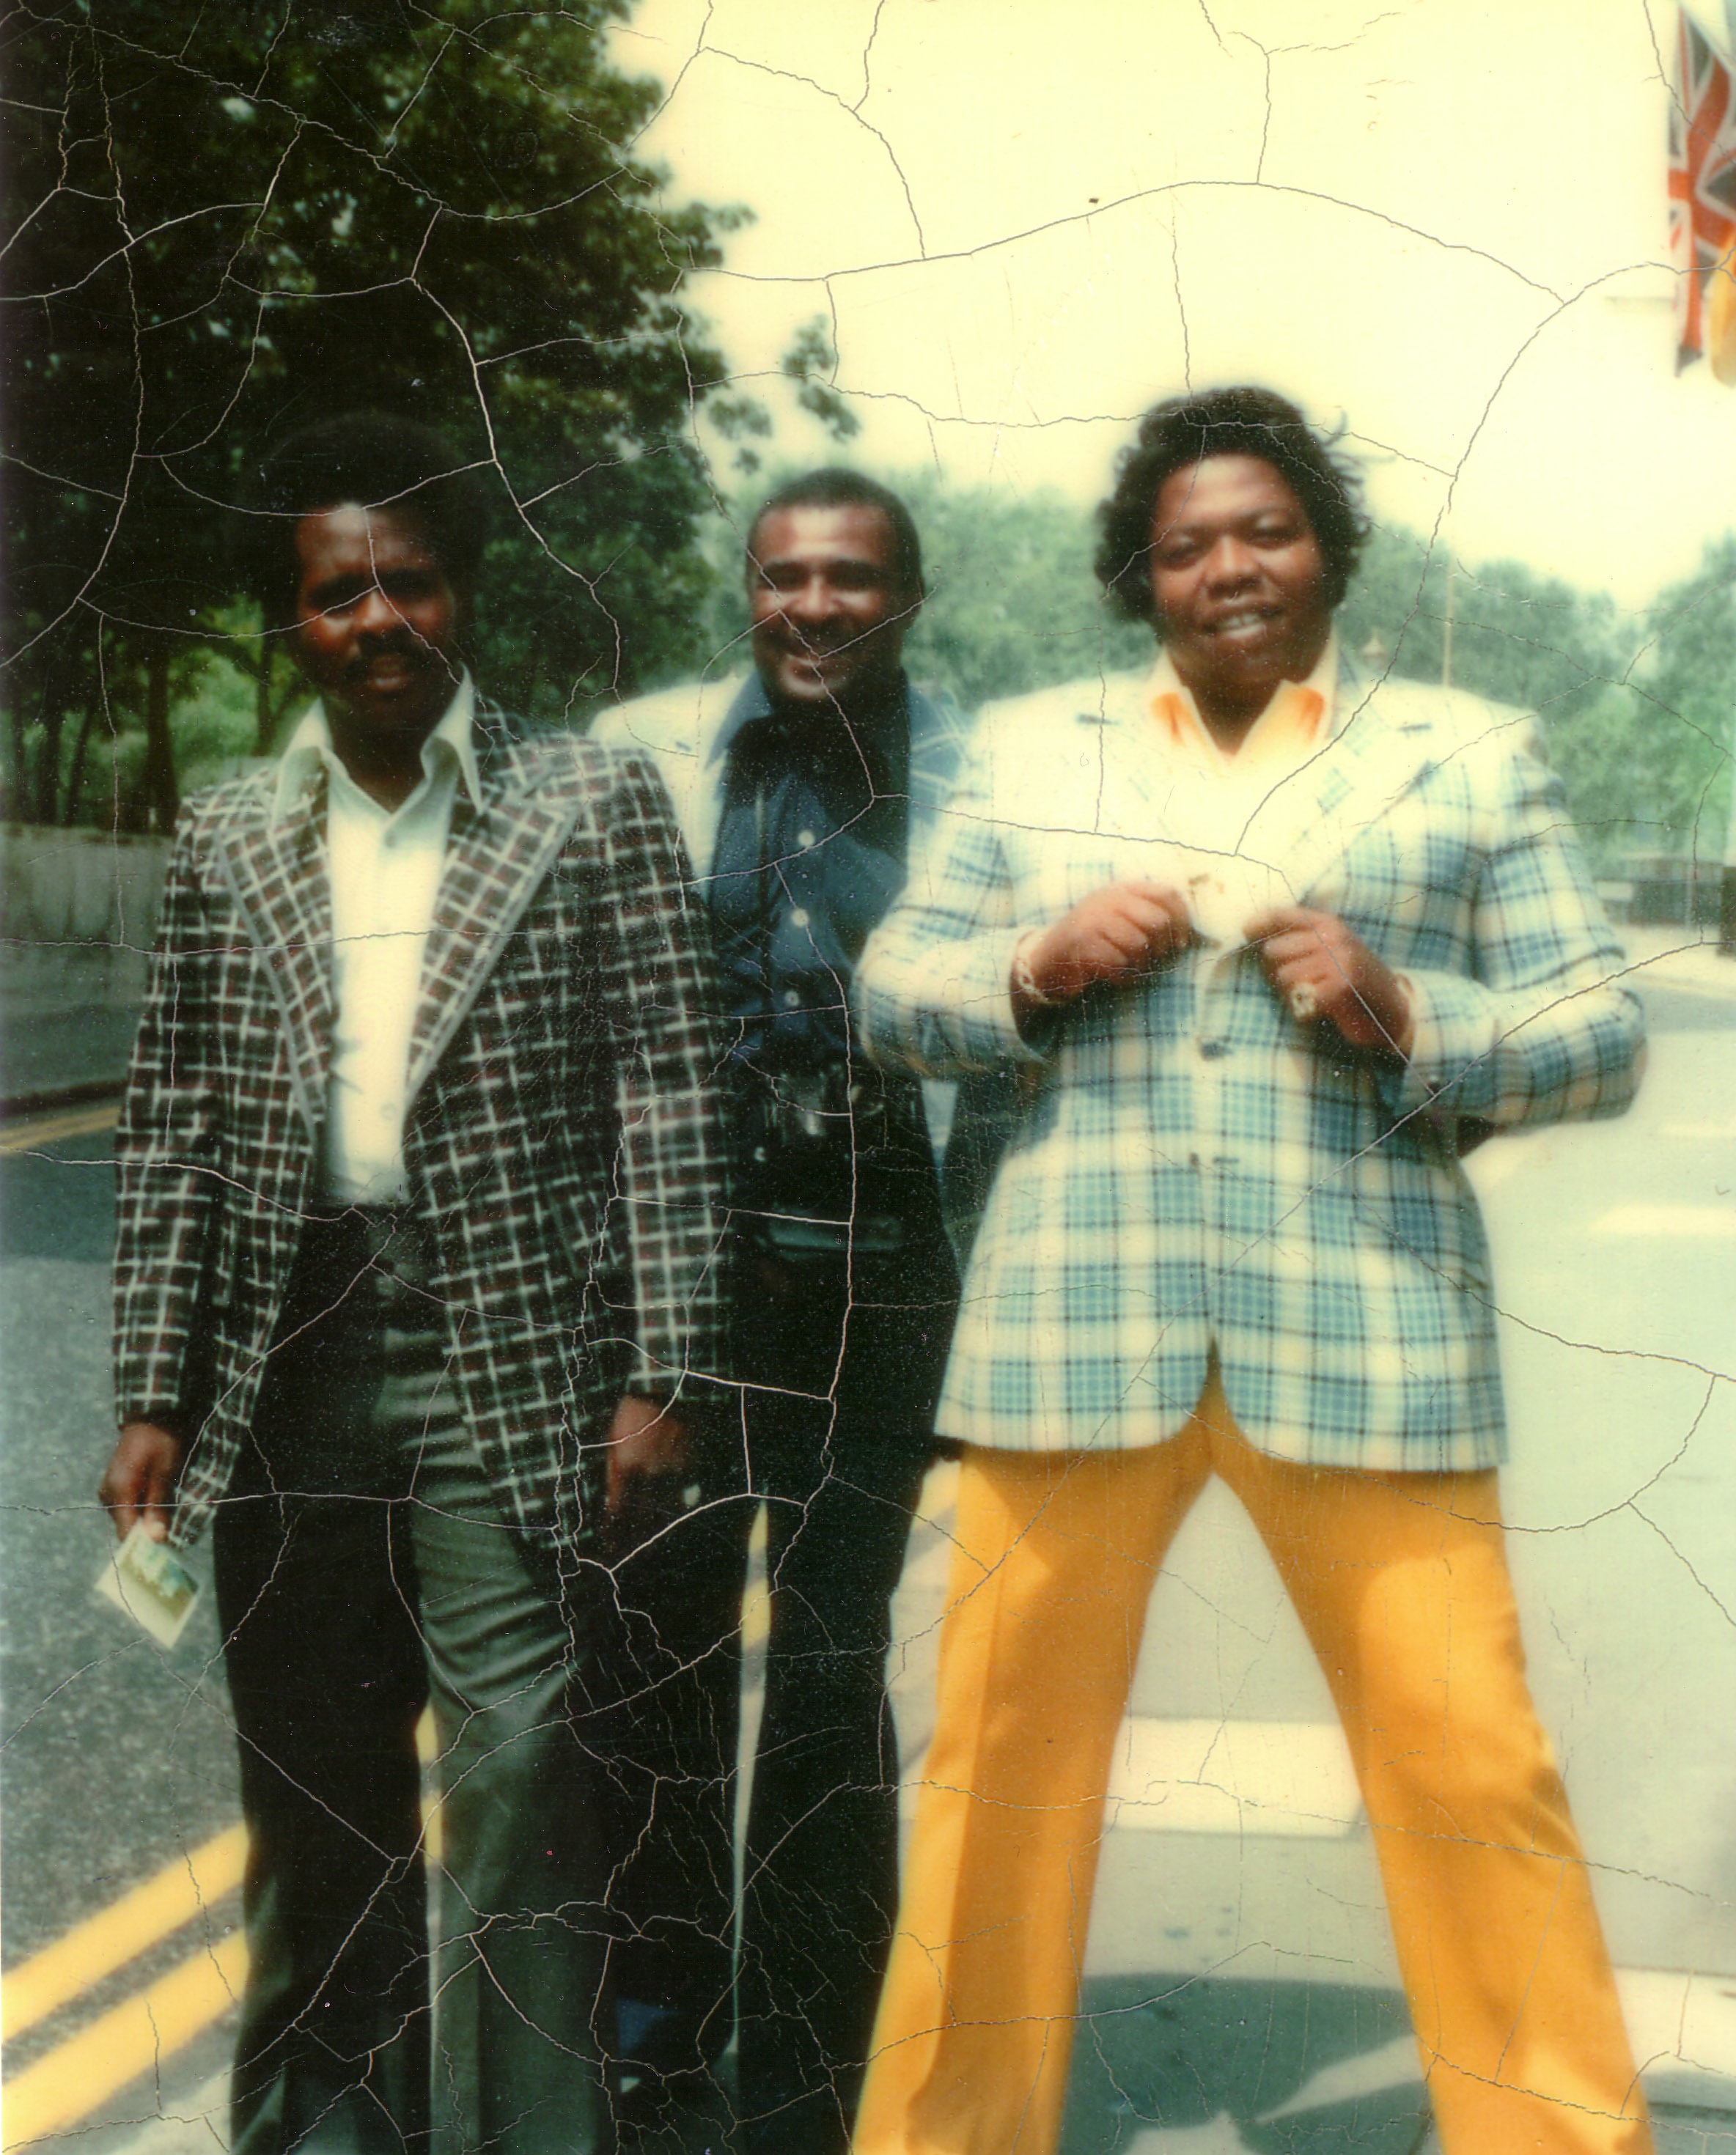 """As he started earning more money from selling heroin, Eddie Jackson, right, developed a taste for the finer things. His appetite eventually earned him the nickname """"the Fat Man.""""  Courtesy of Courtney Brown Jr."""